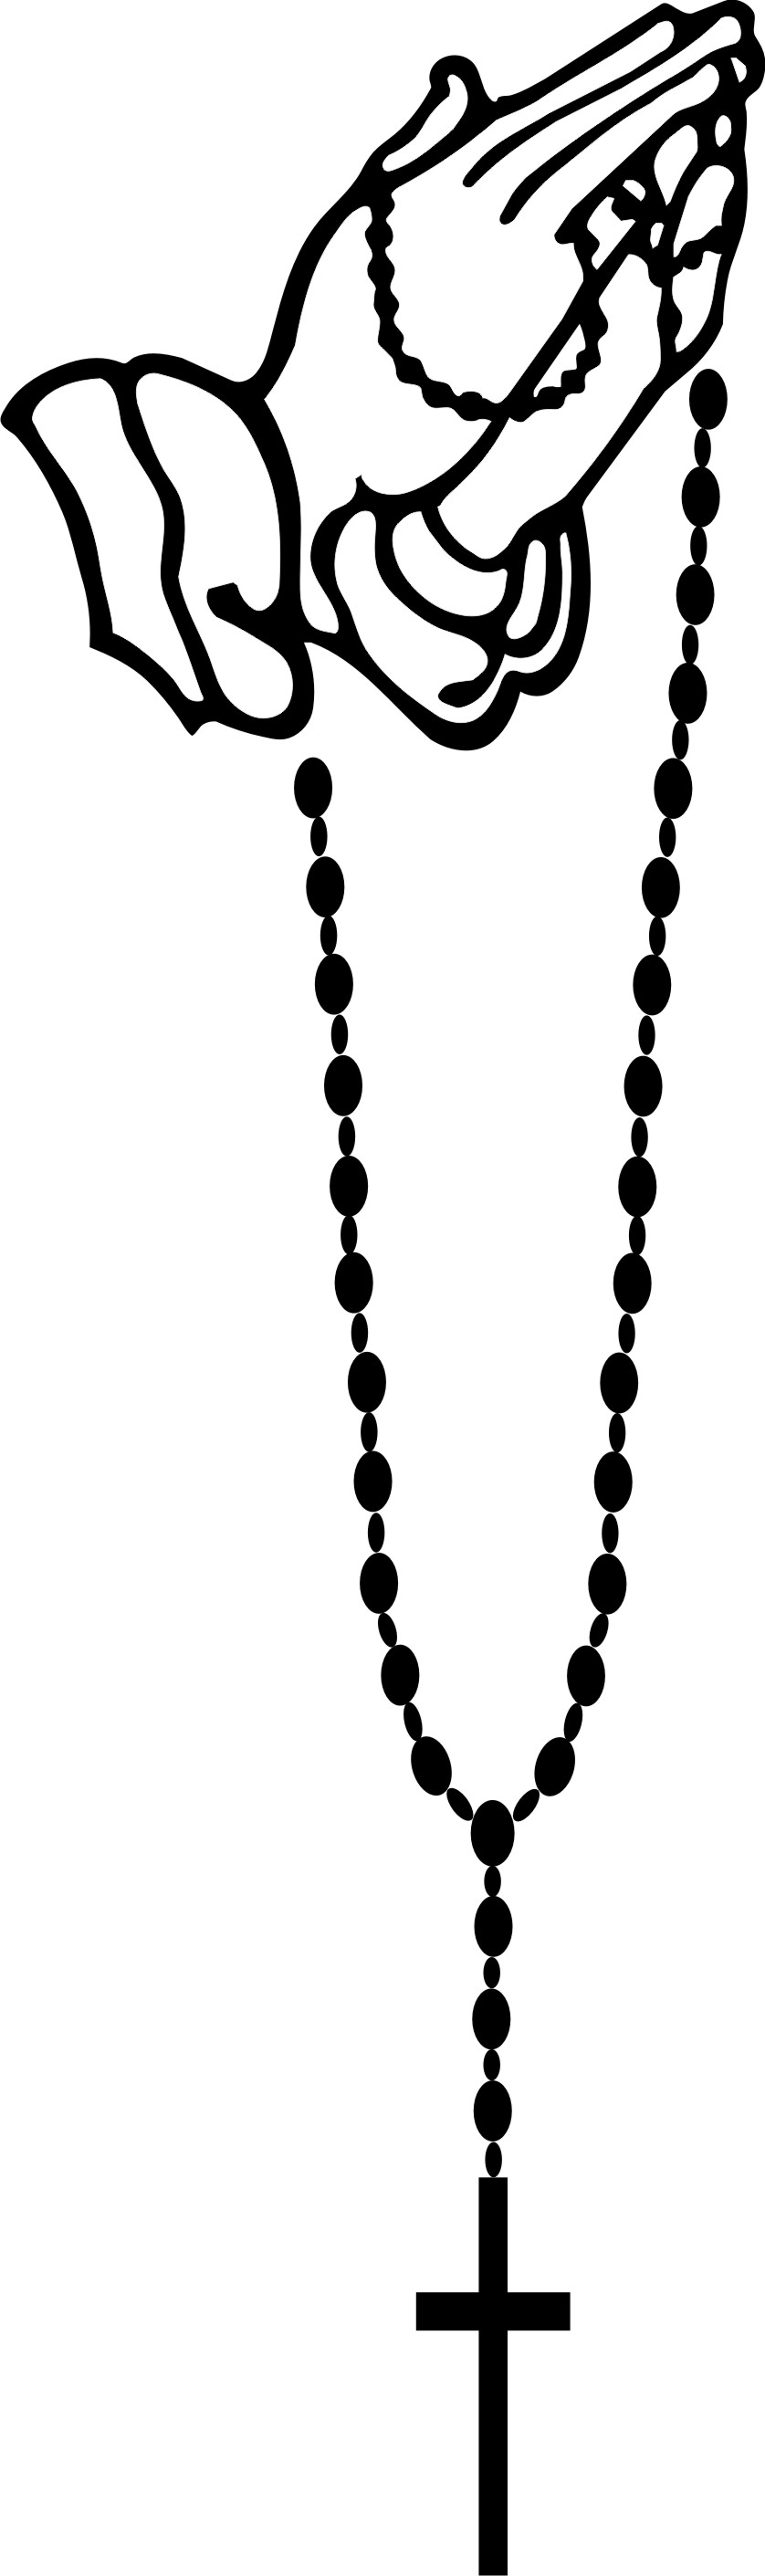 Rosary clipart. Free cliparts download clip